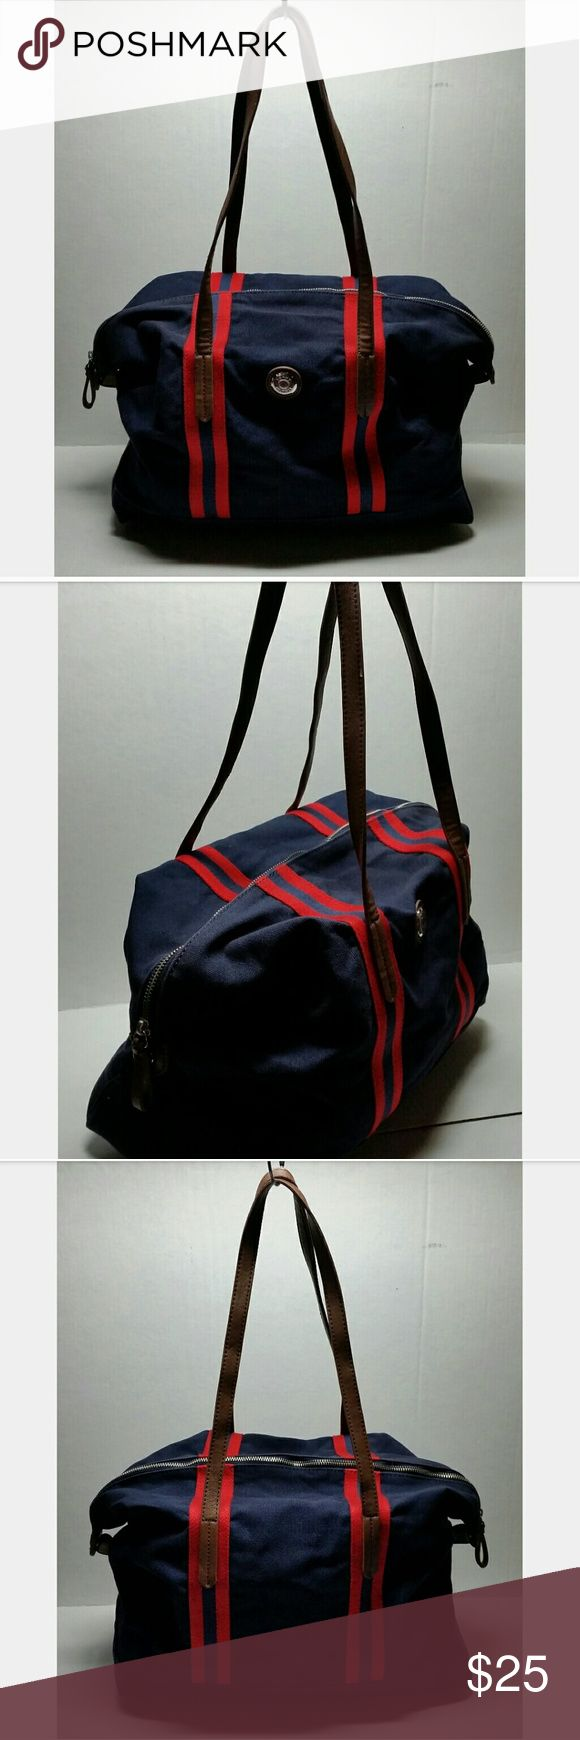 Tommy Hilfiger Duffle Bag 100 % Authentic  Item has been used / Normal Wear  Comes as seen in pictures   * Serious Buyers Only   * * CHECK OUT ALL THE OTHER ITEMS I HAVE FOR SALE Tommy Hilfiger Bags